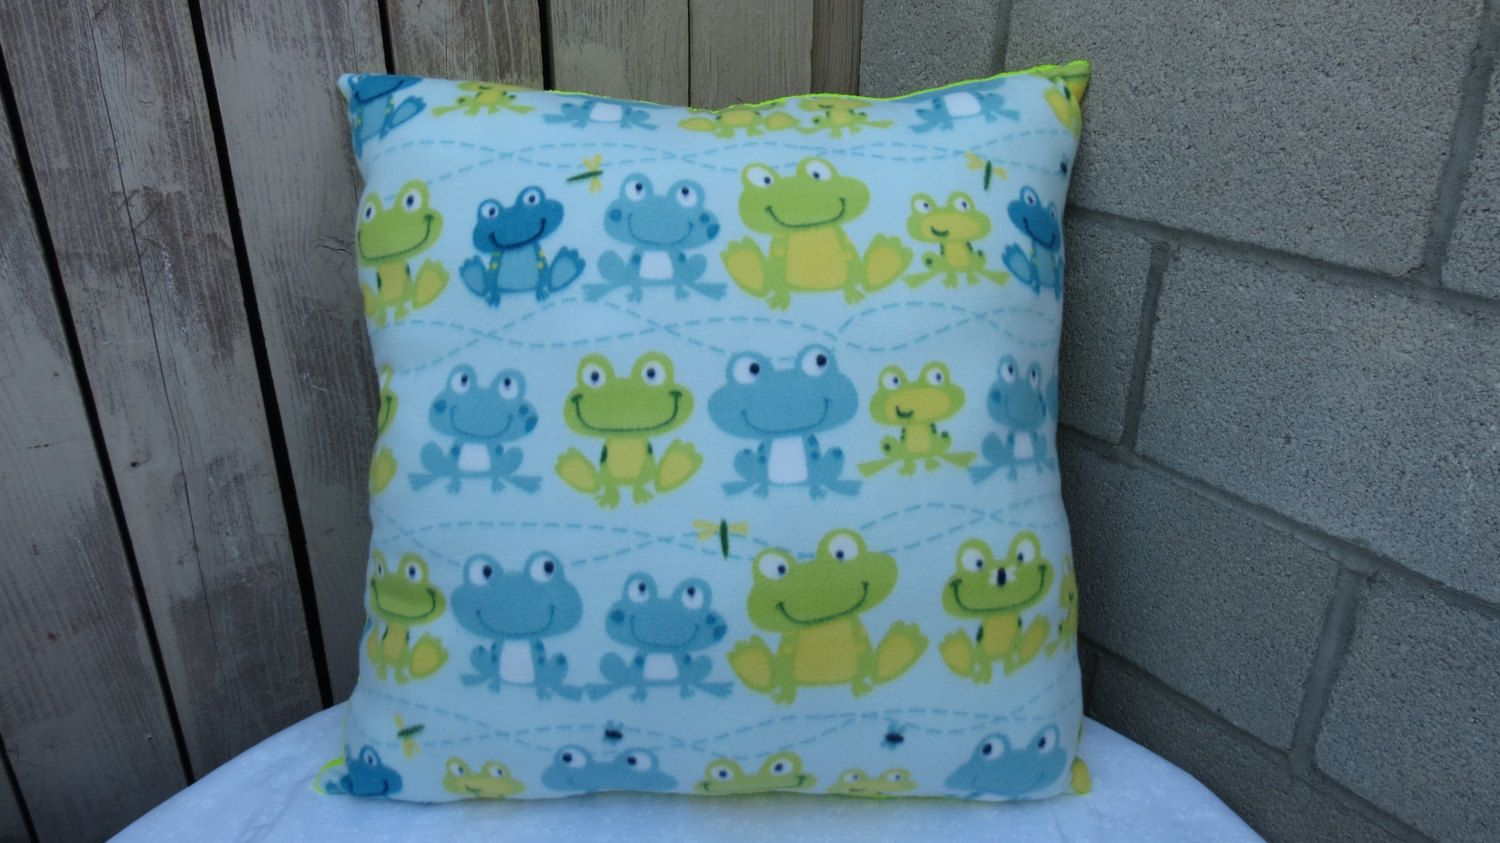 Frog Pillow, Large Pillow with Frogs, Frogs Bedding, Fabric with Frogs, Lime Green Pillow, Pillow Green, Frog Fabric, 28 X 28 Throw Pillow by MzGeezDesigns on Etsy